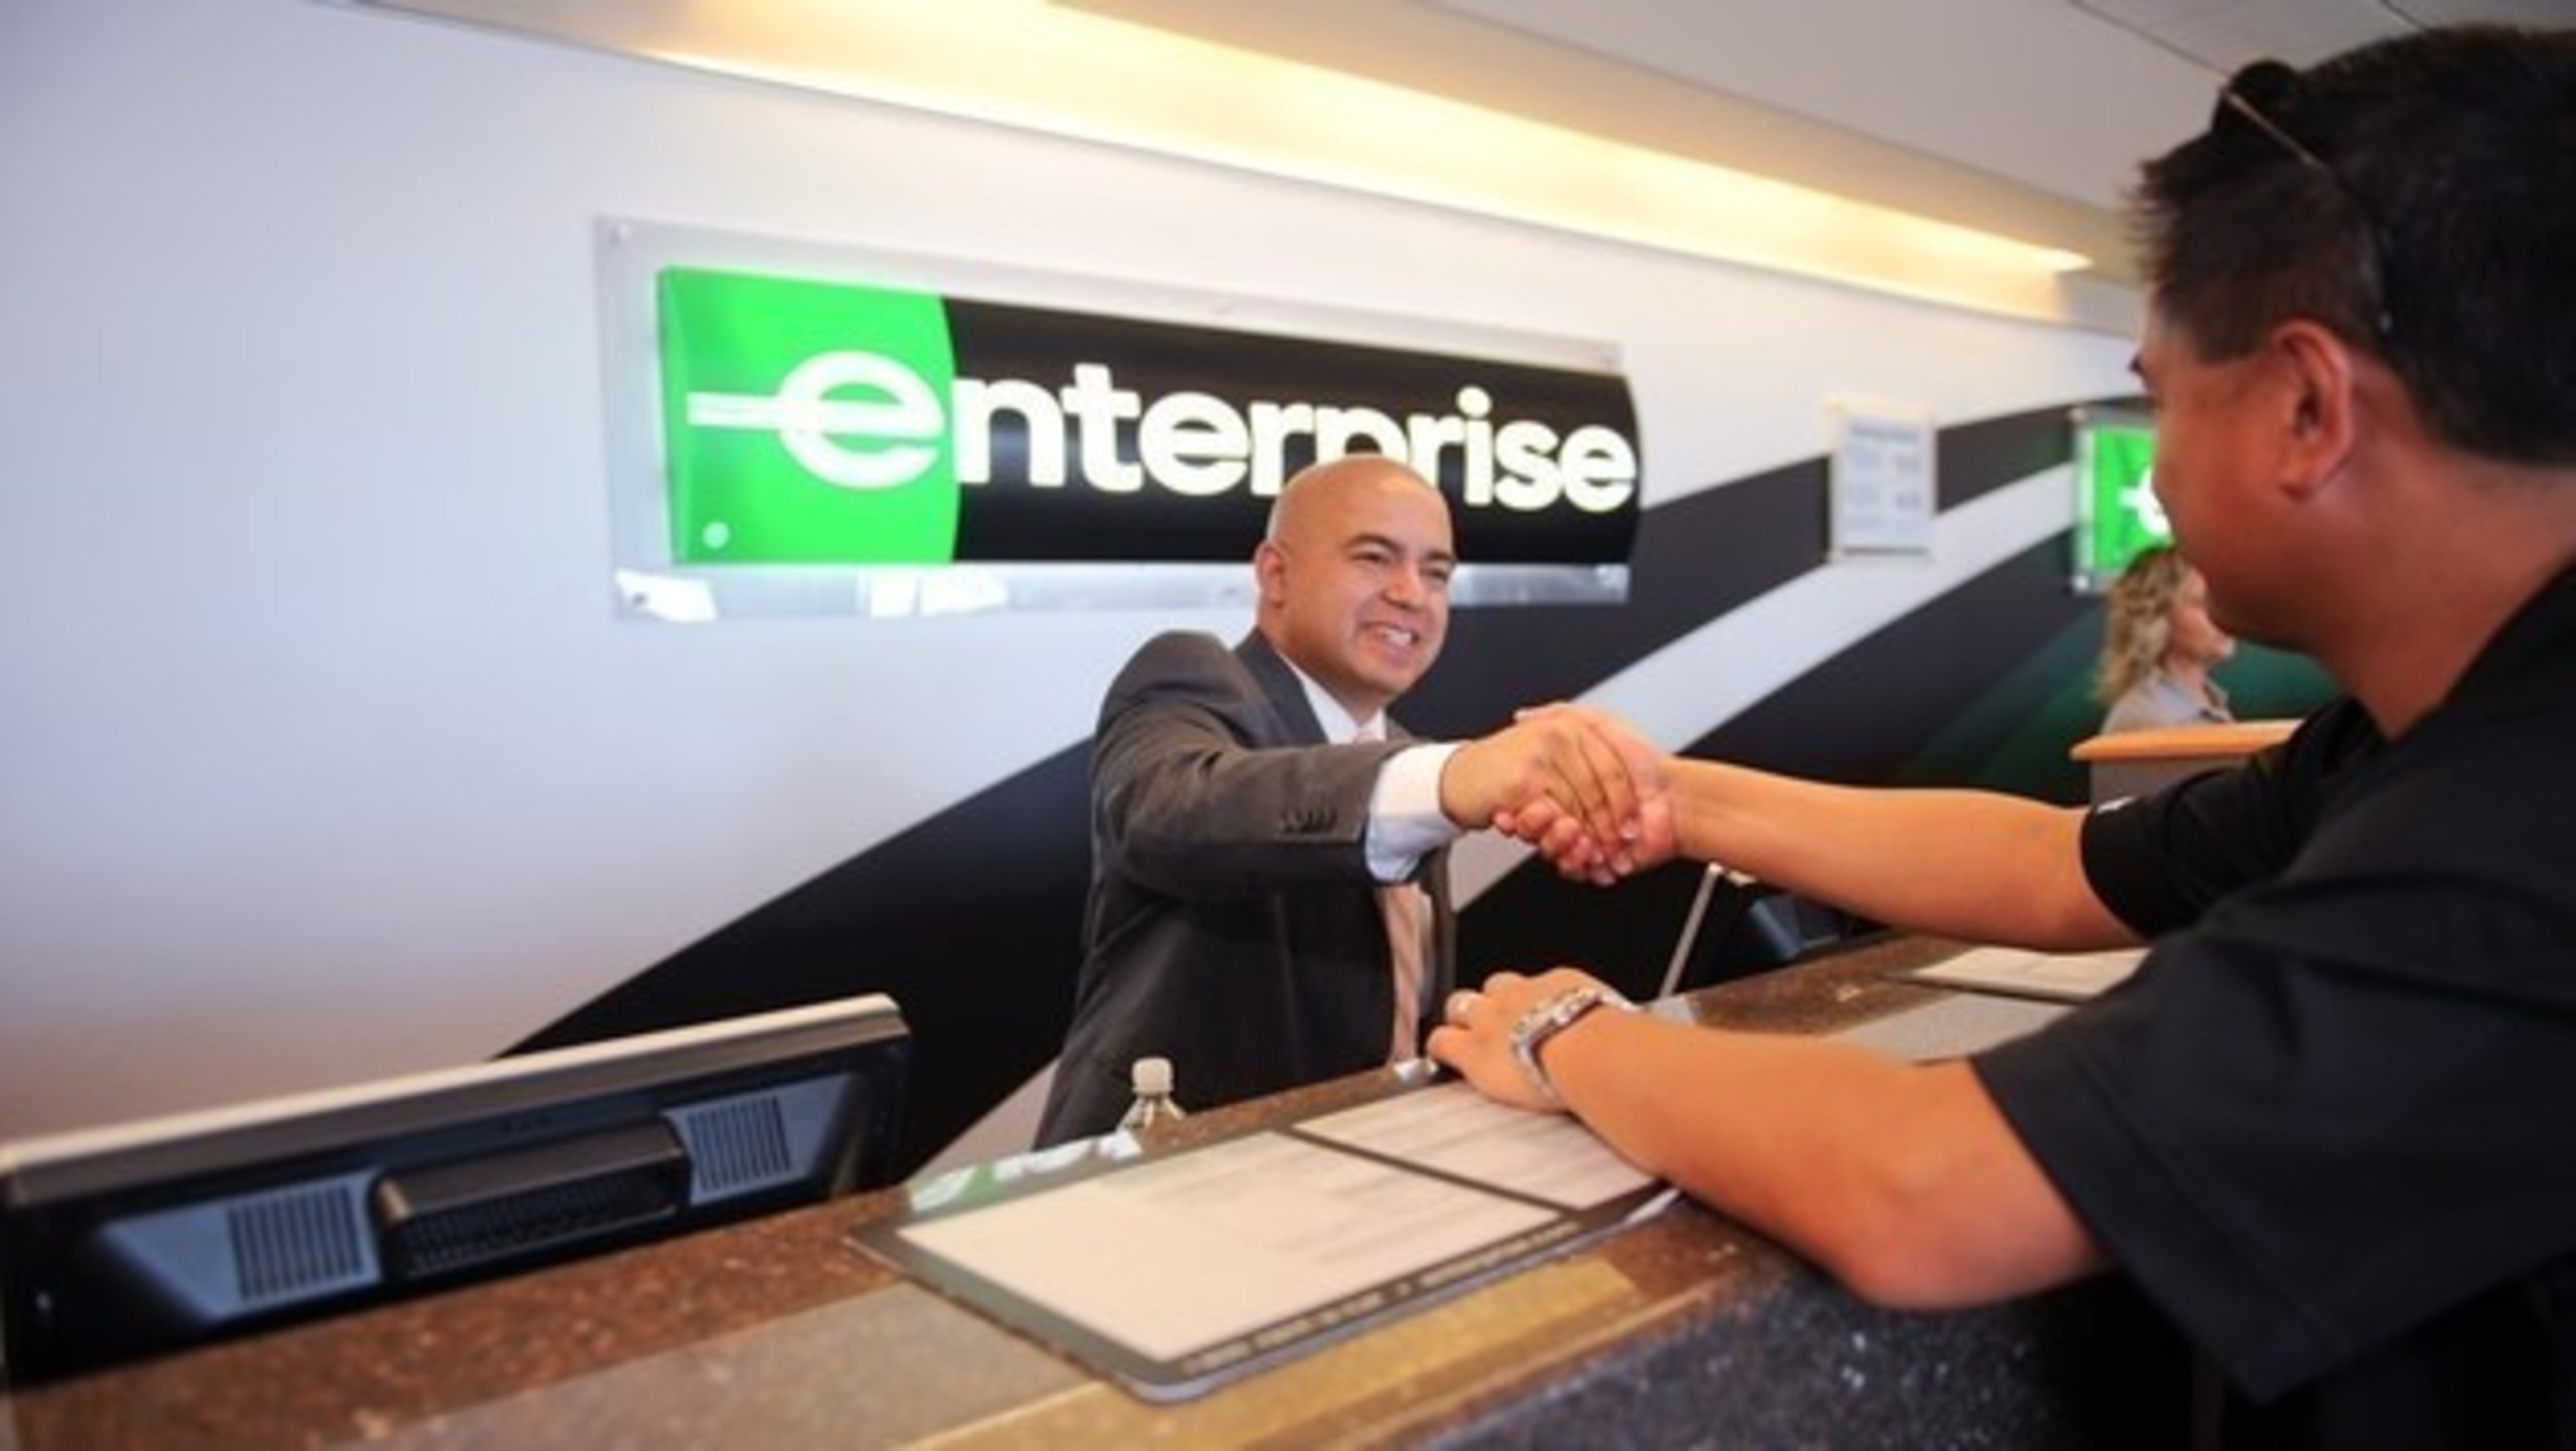 Enterprise Rent-A-Car is now operating in Argentina, Paraguay and Curacao.